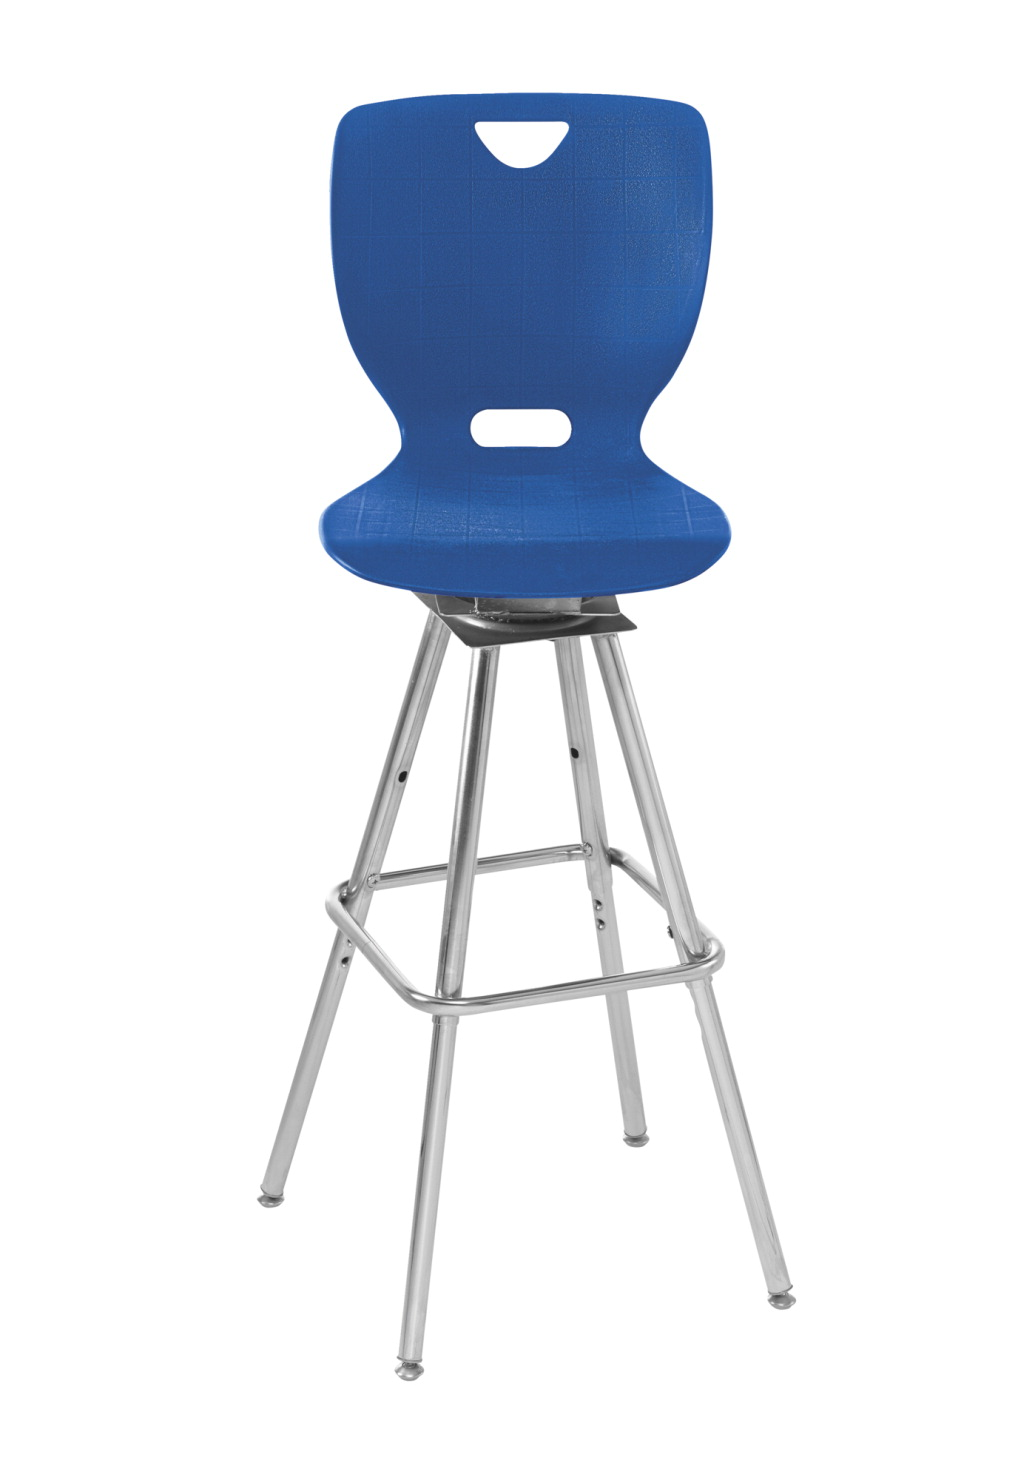 Classroom Select NeoClass Swivel Stool, 18 Inch A+ Shell Seat, Chrome Frame, Various Options